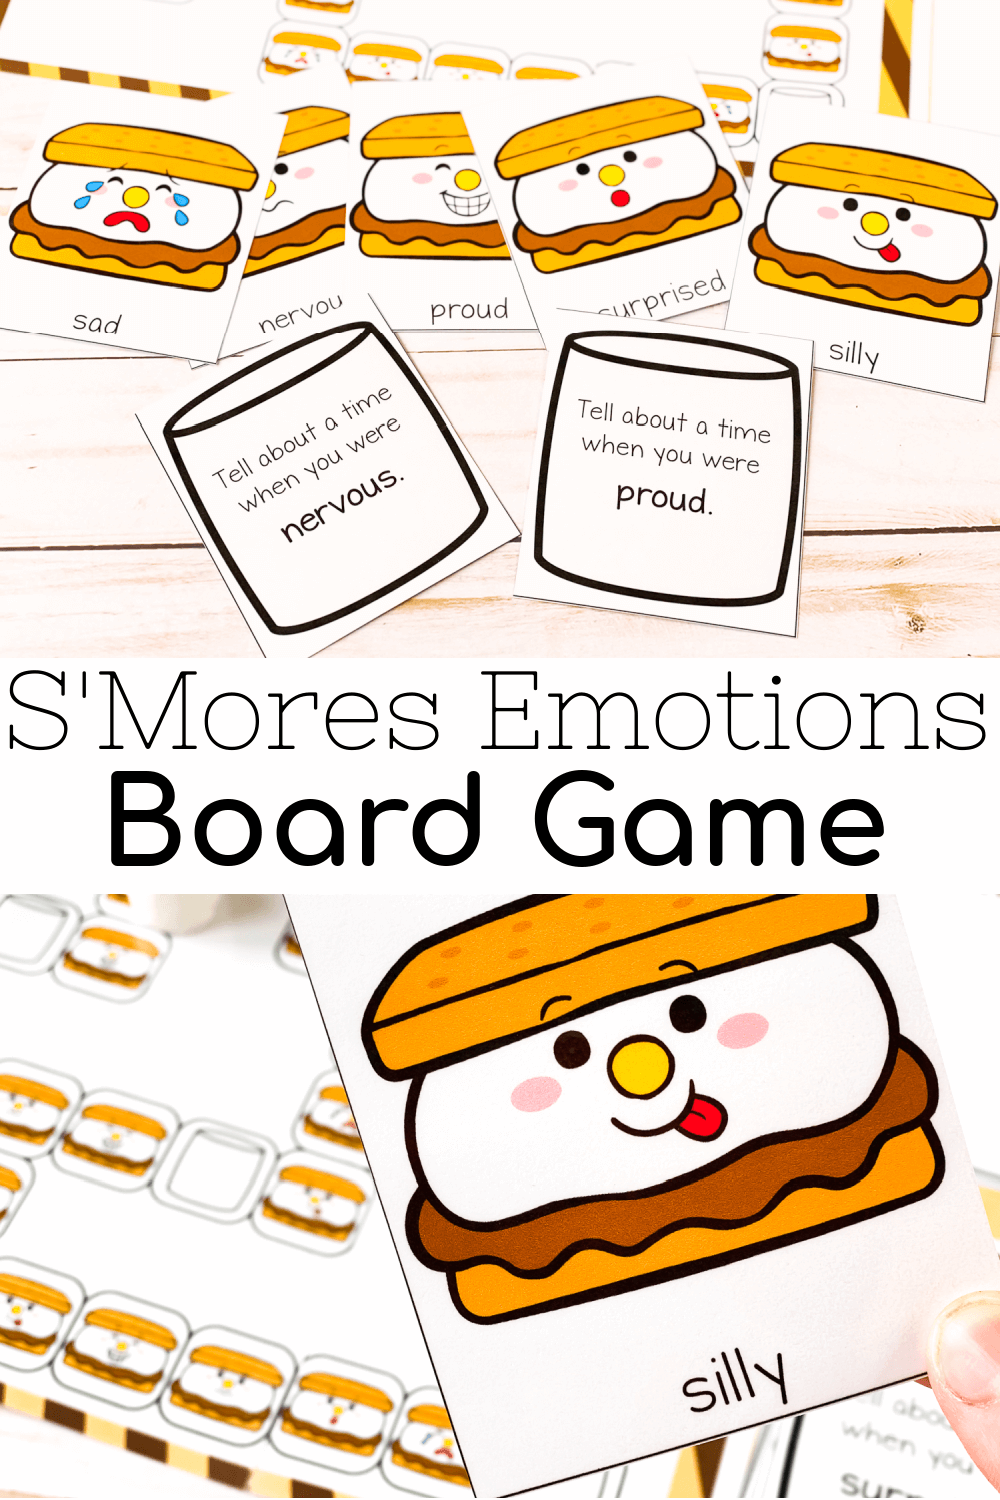 S'mores Emotions Board Game